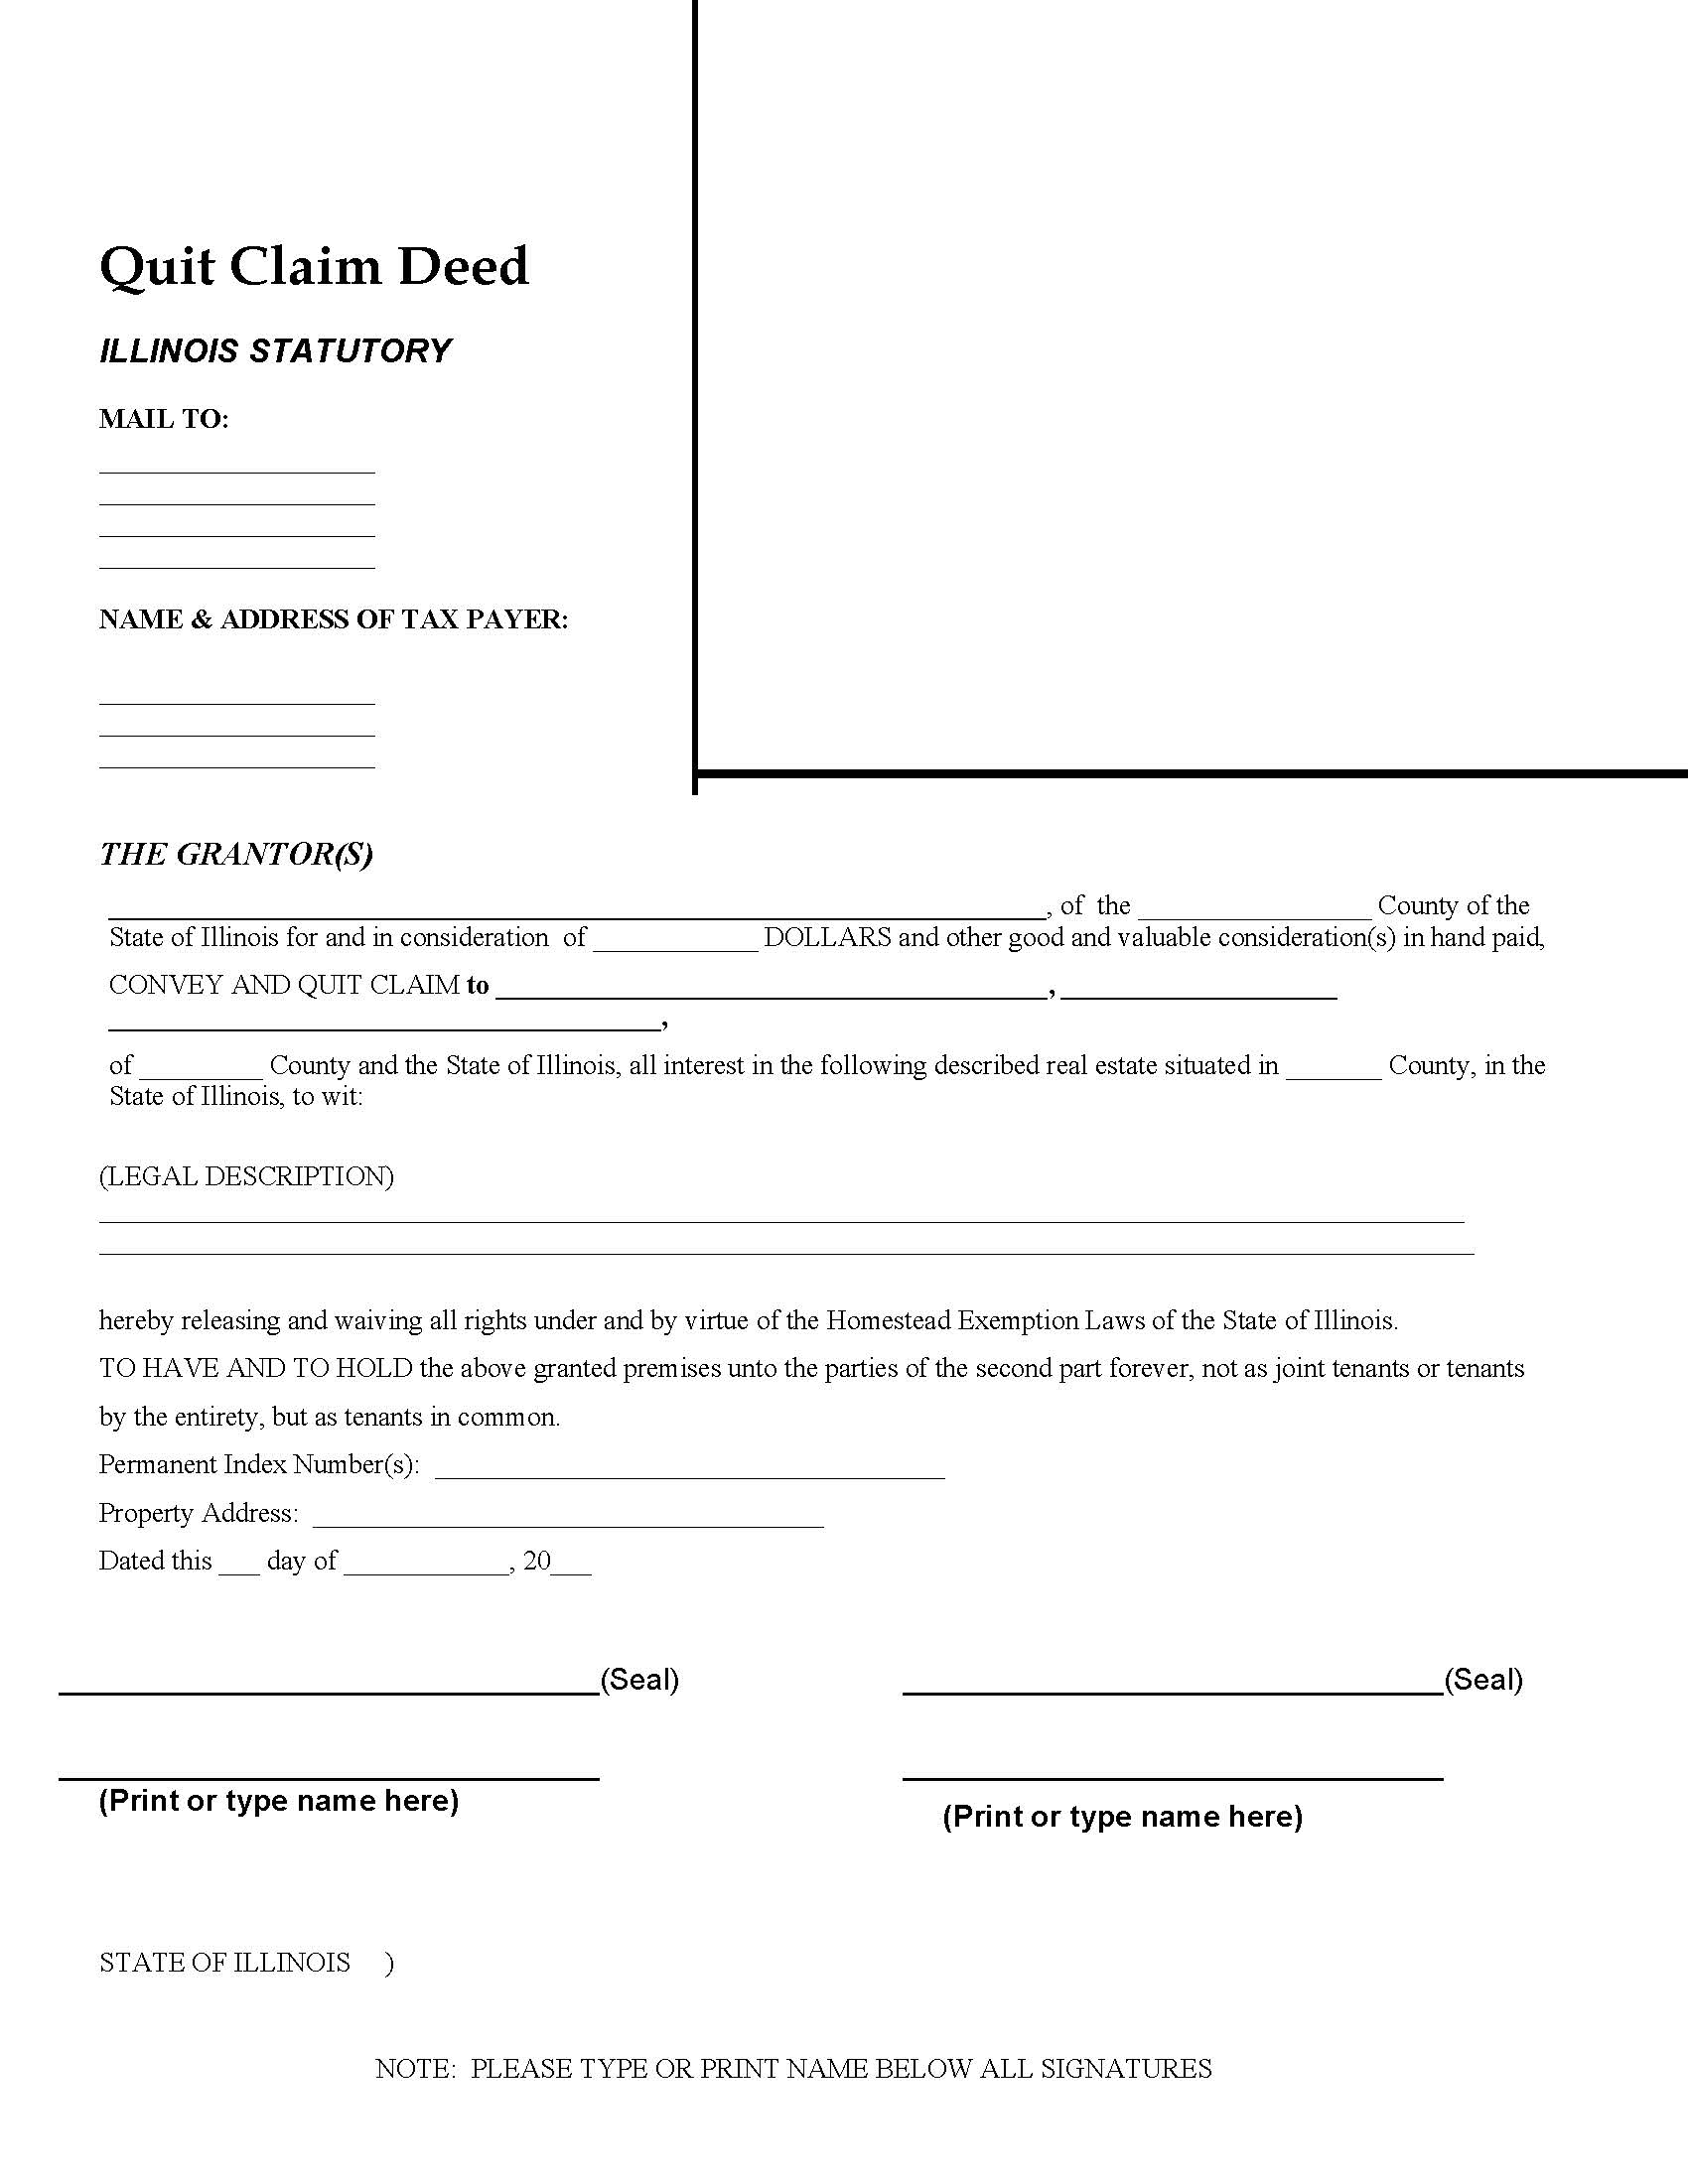 Illinois Quit Claim Deed Form - Deed Forms : Deed Forms